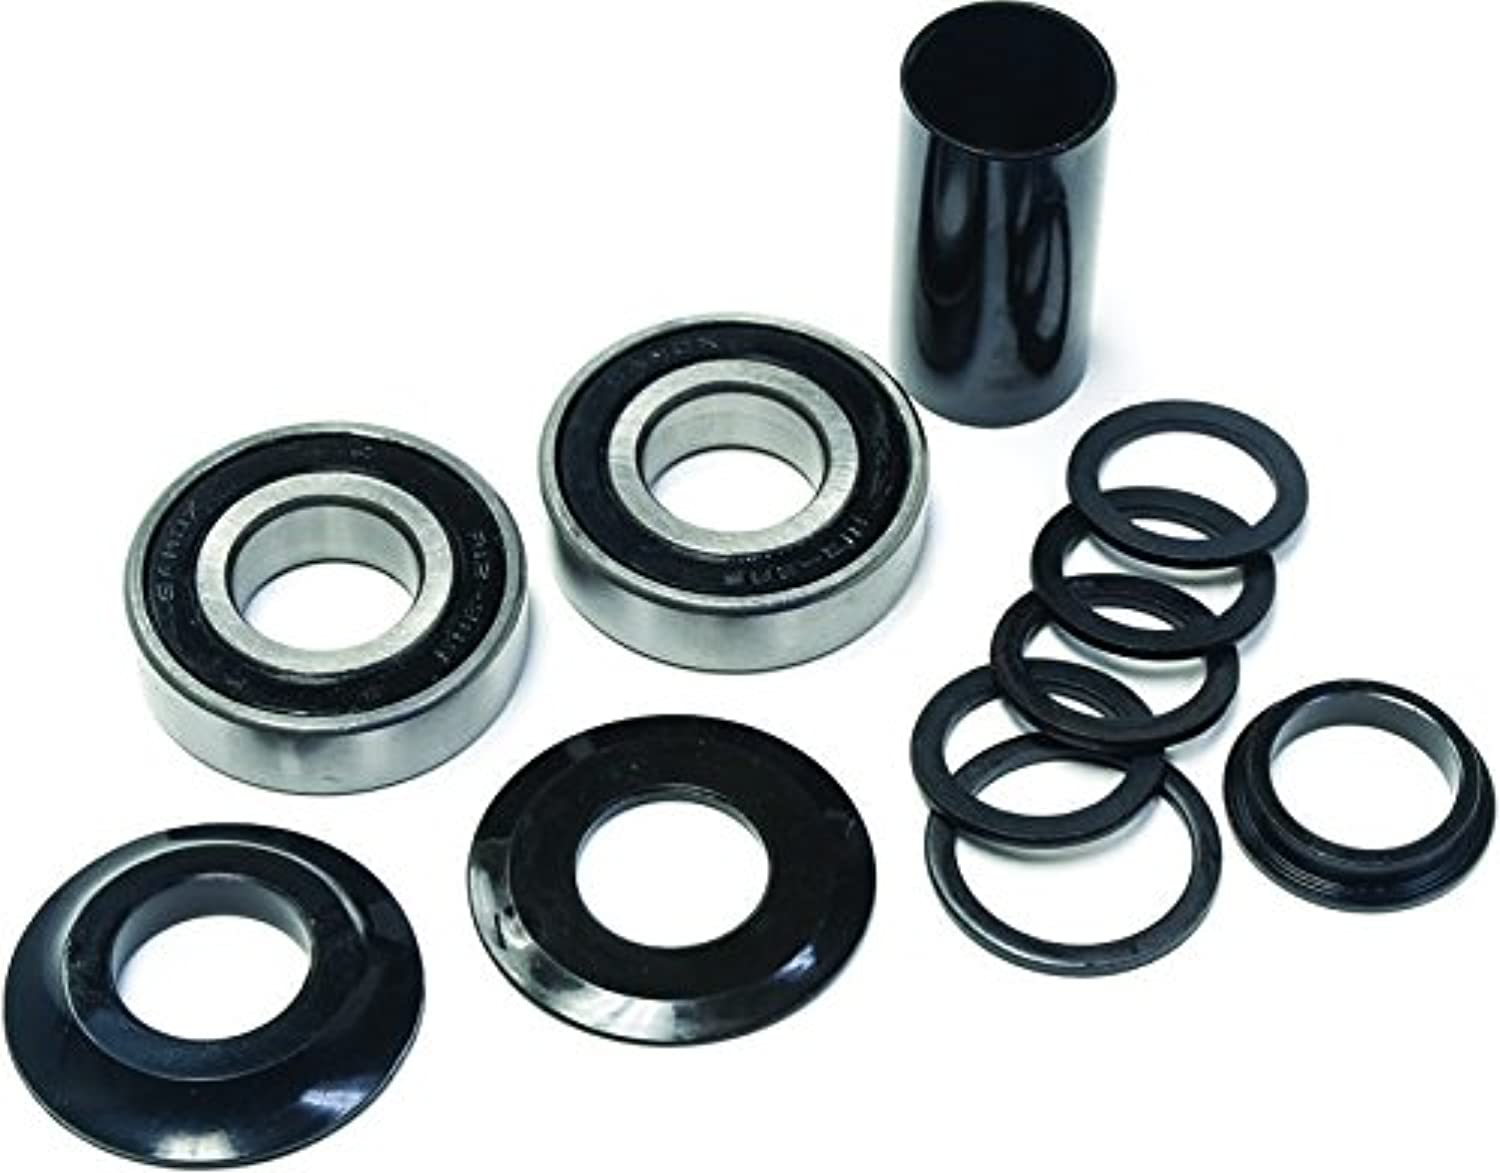 Curb Dog Mid Sealed 19Mm Fits 8T Spindle Bb